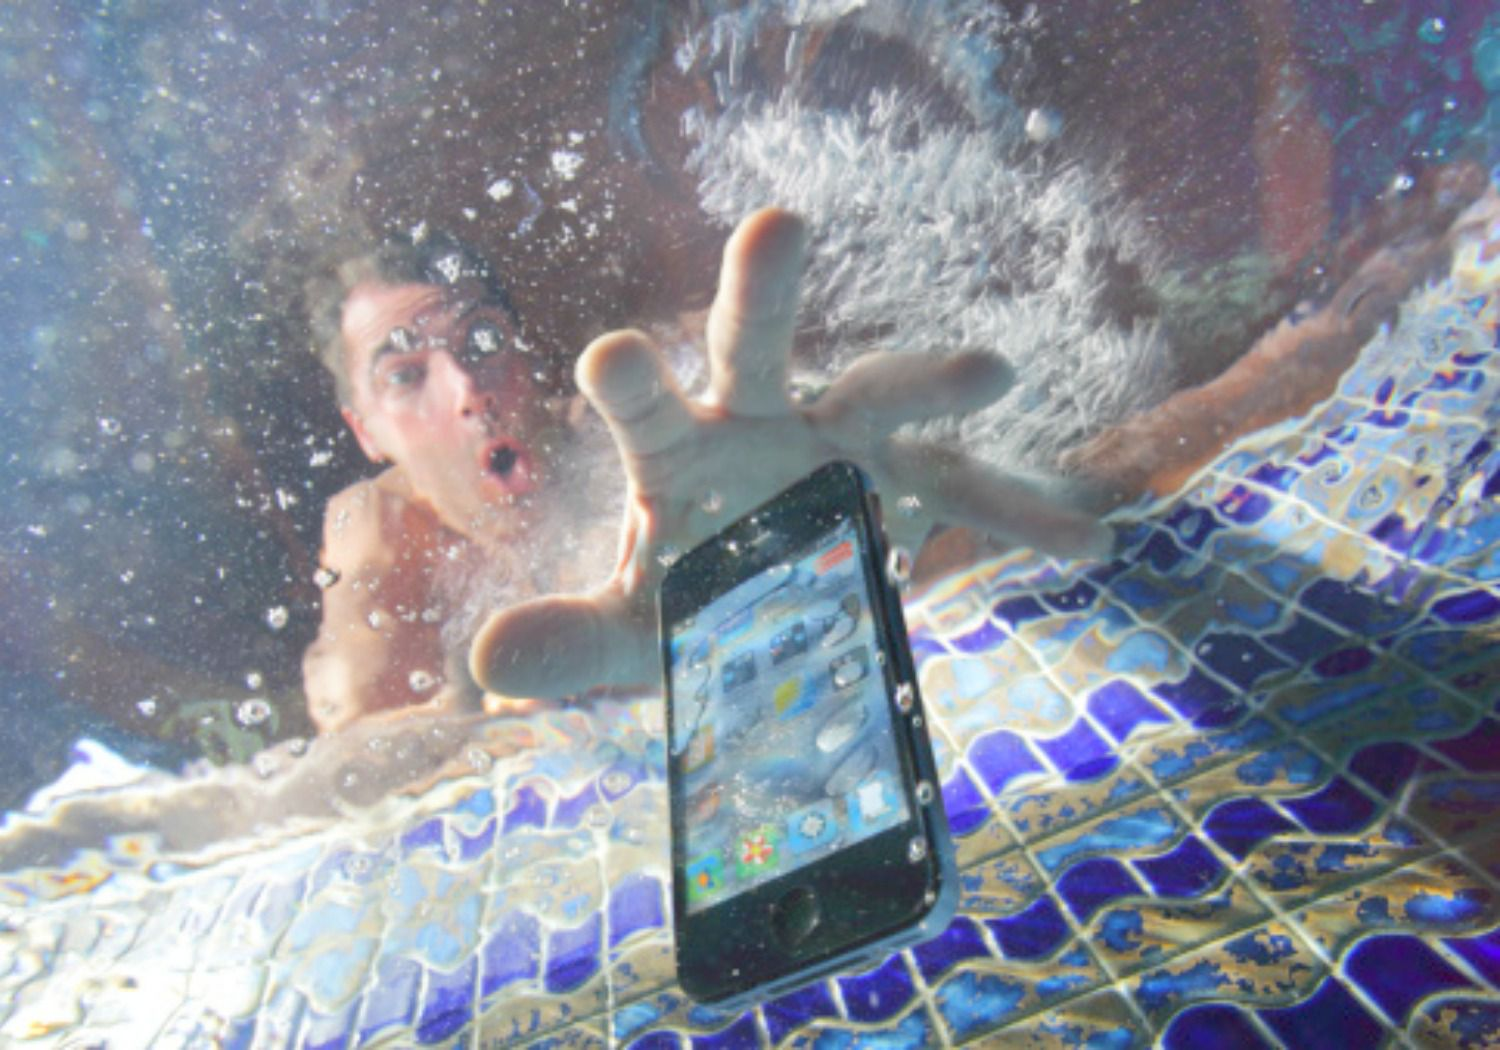 How to Save Your Smartphone If It Gets Wet